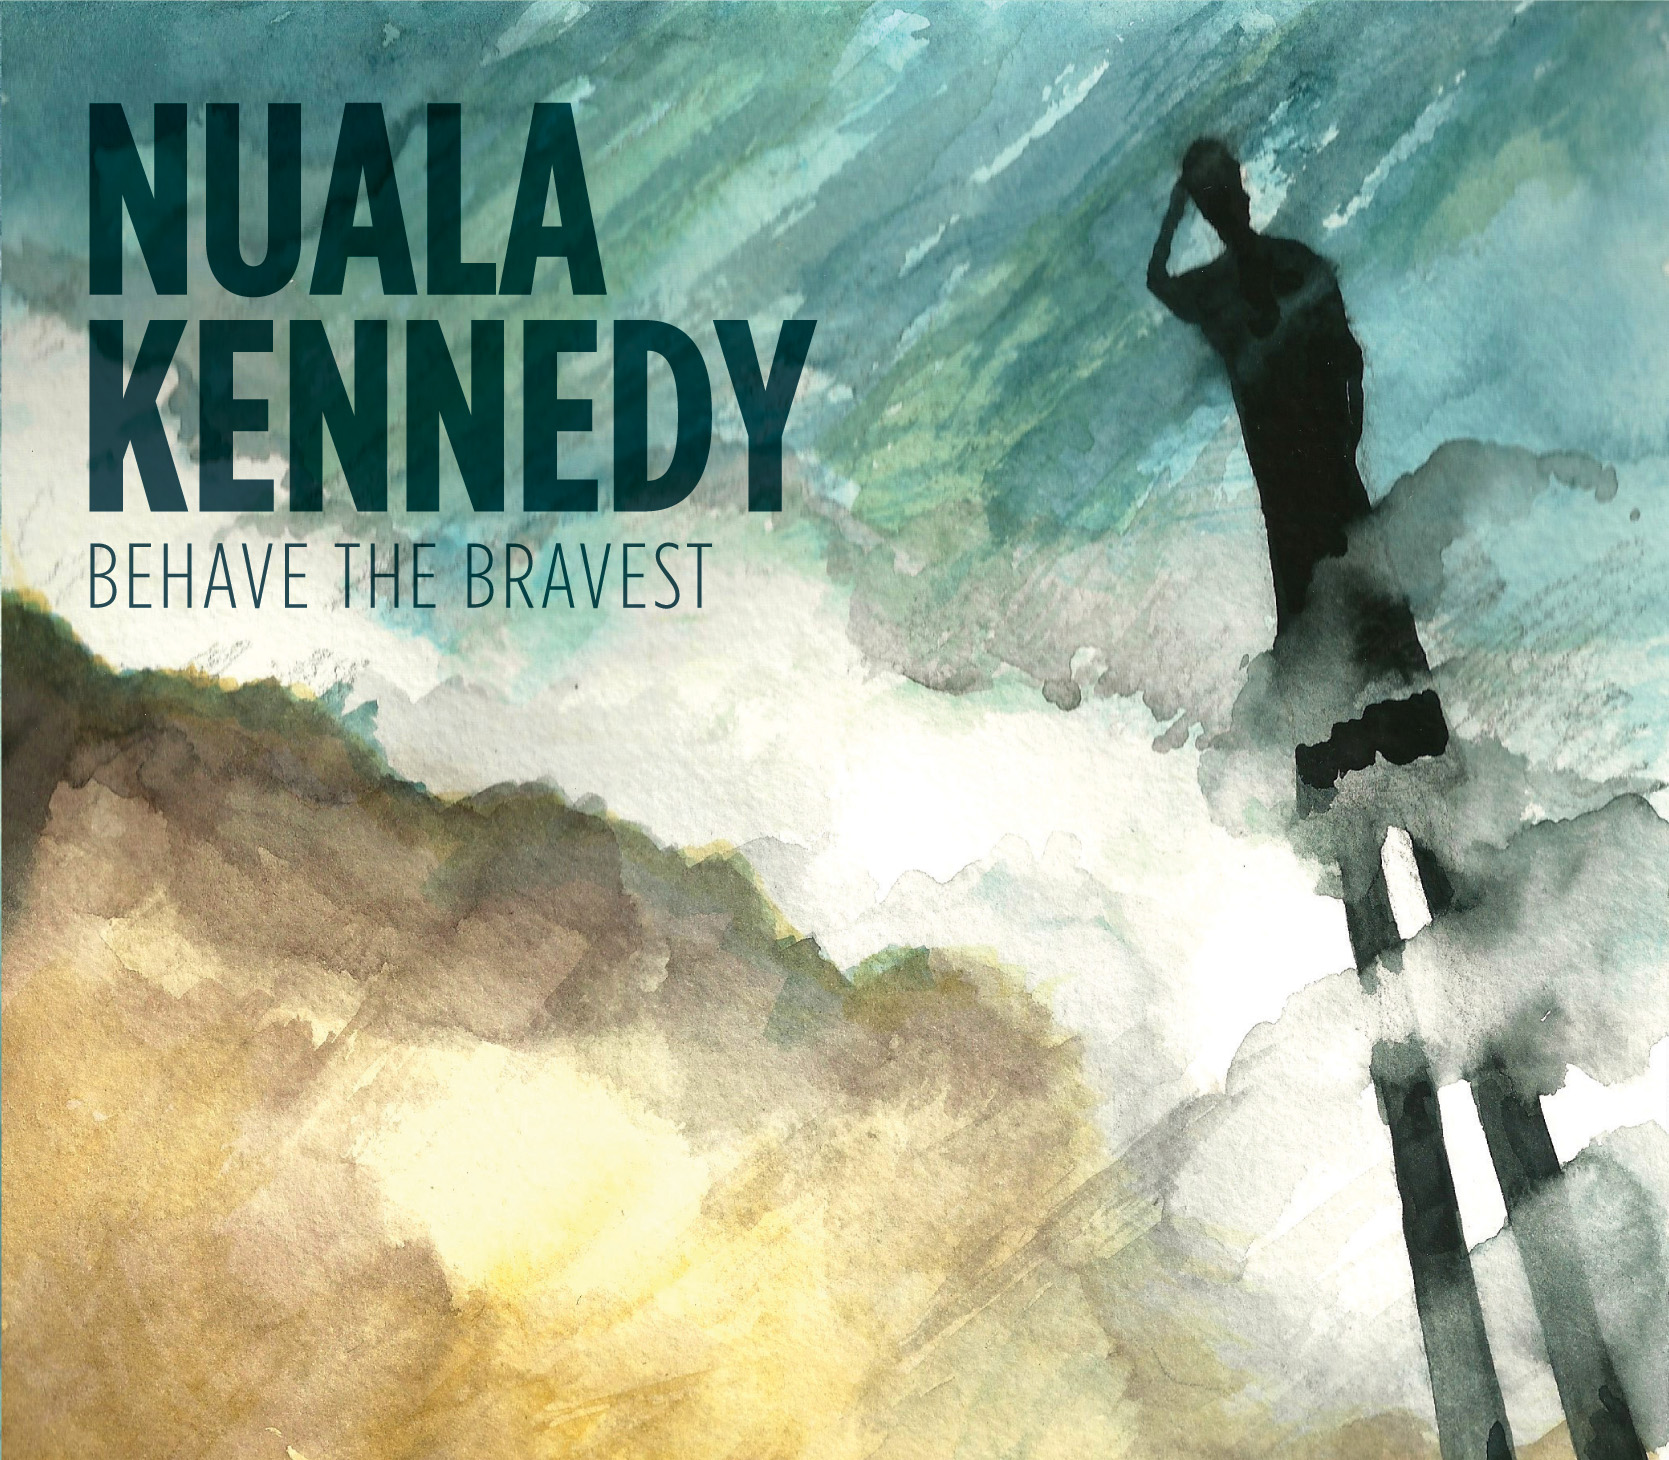 Nuala Kennedy Behave the Bravest